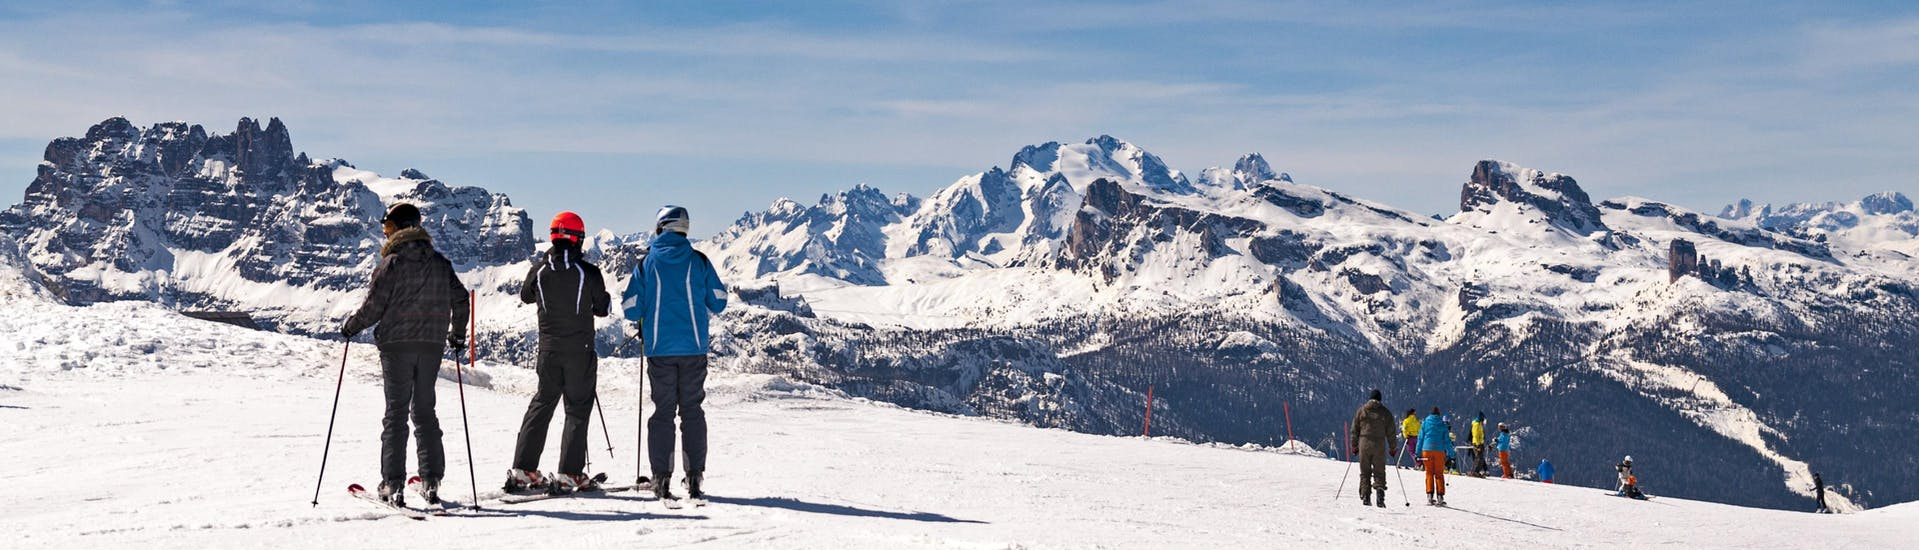 Scenic view of the Dolomites with skiers taking part in ski lessons from ski schools in the ski area Cortina.